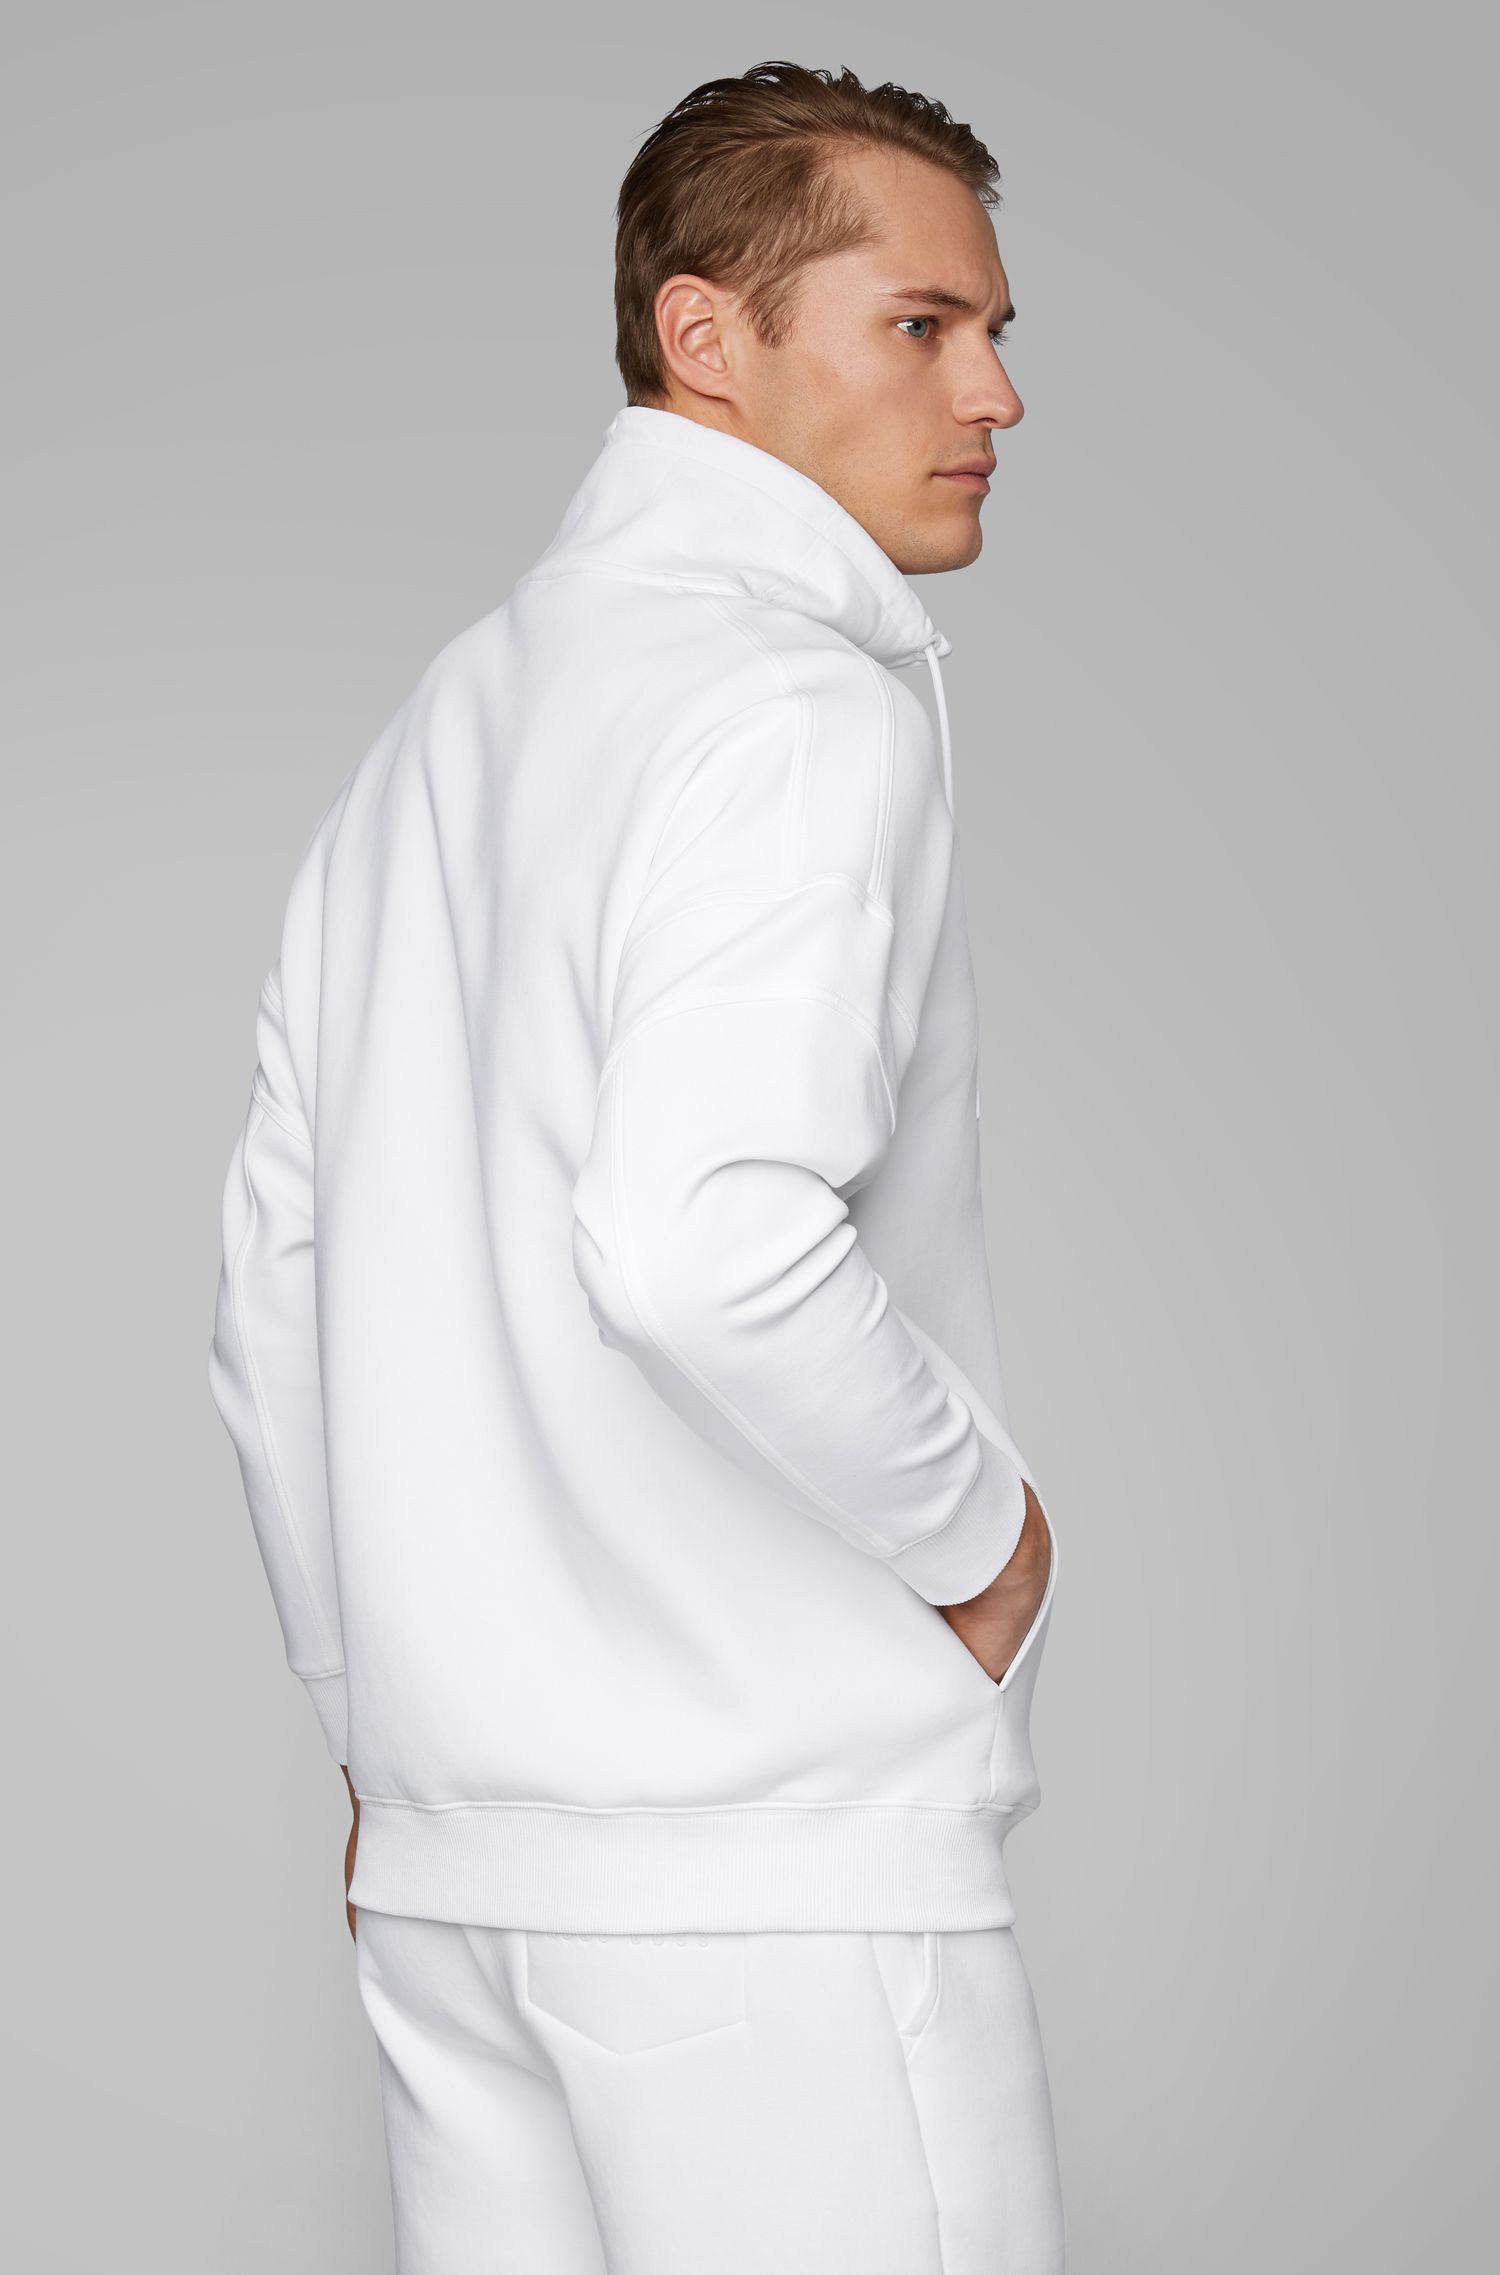 Felpa relaxed fit con logo curvilineo e colletto con coulisse, Bianco